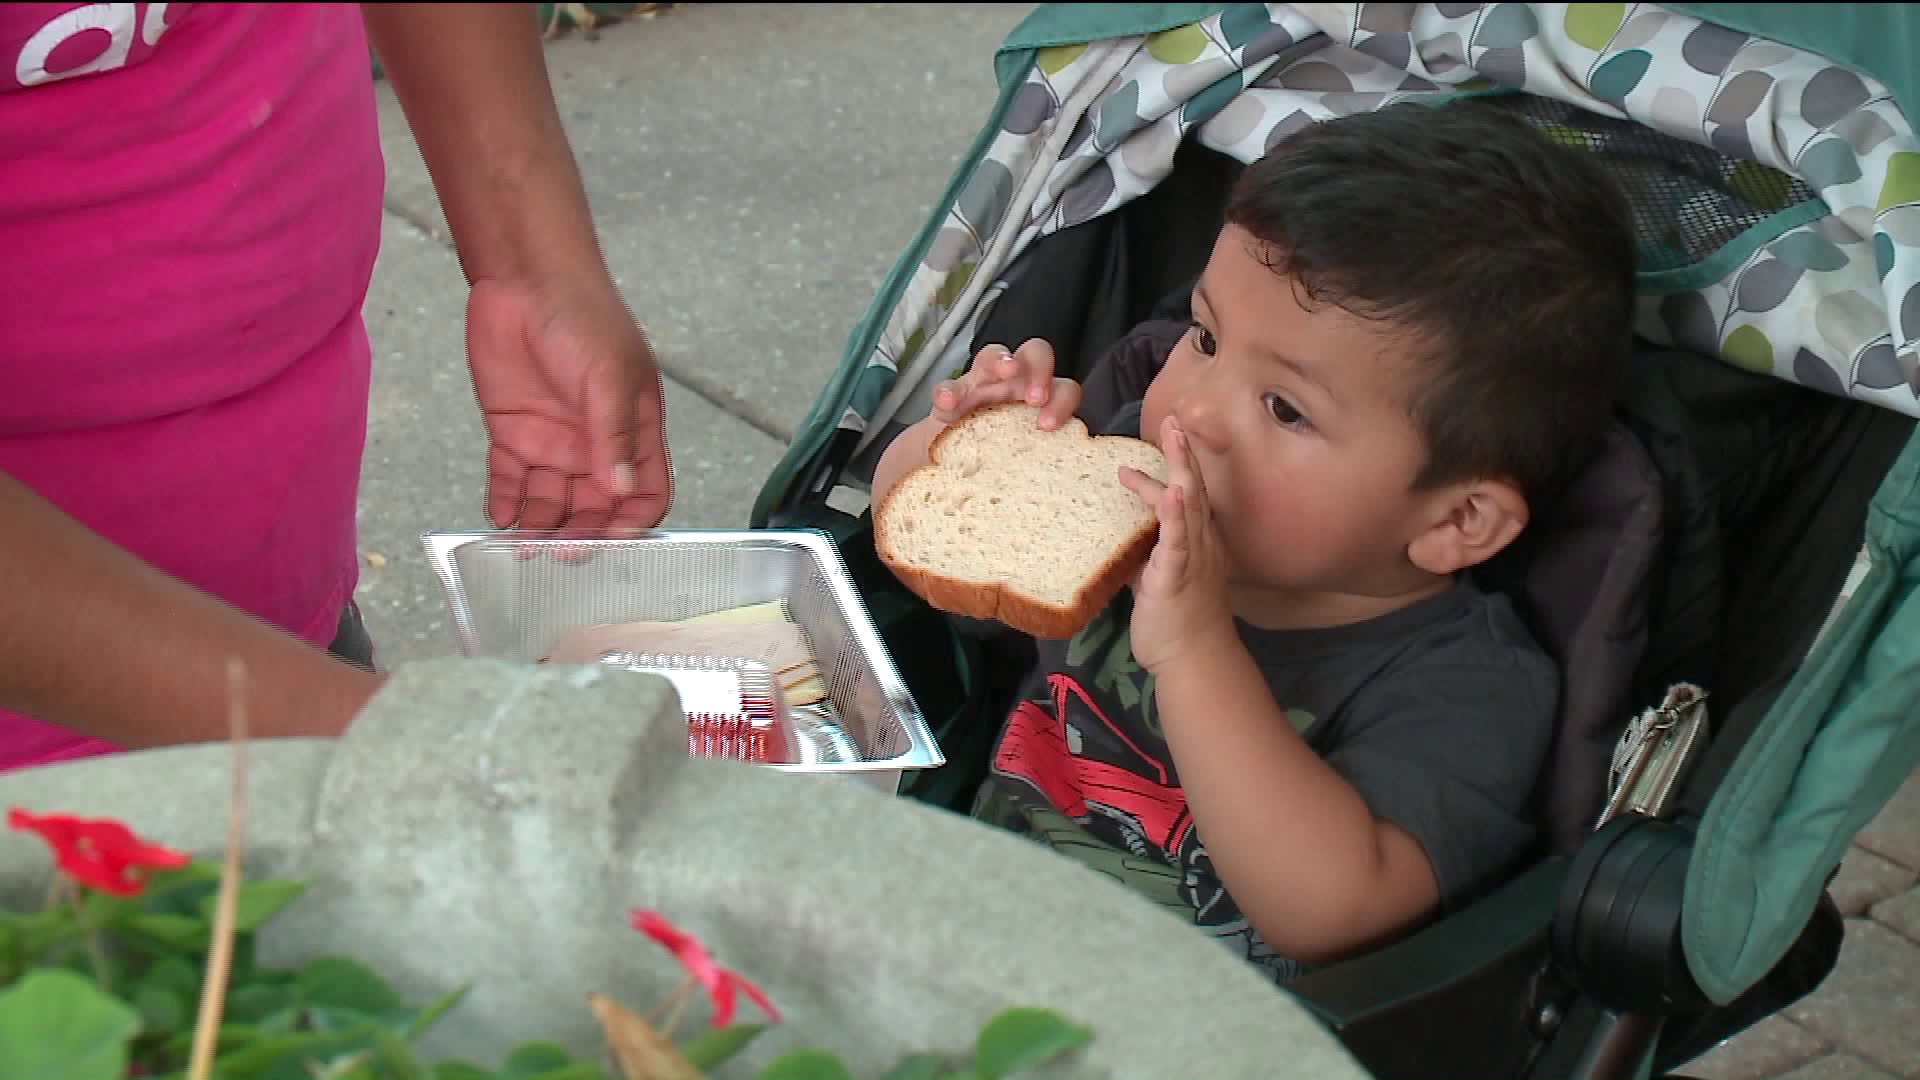 'Lunch Buses' Help Keep Chicago Kids Full Over the Summer